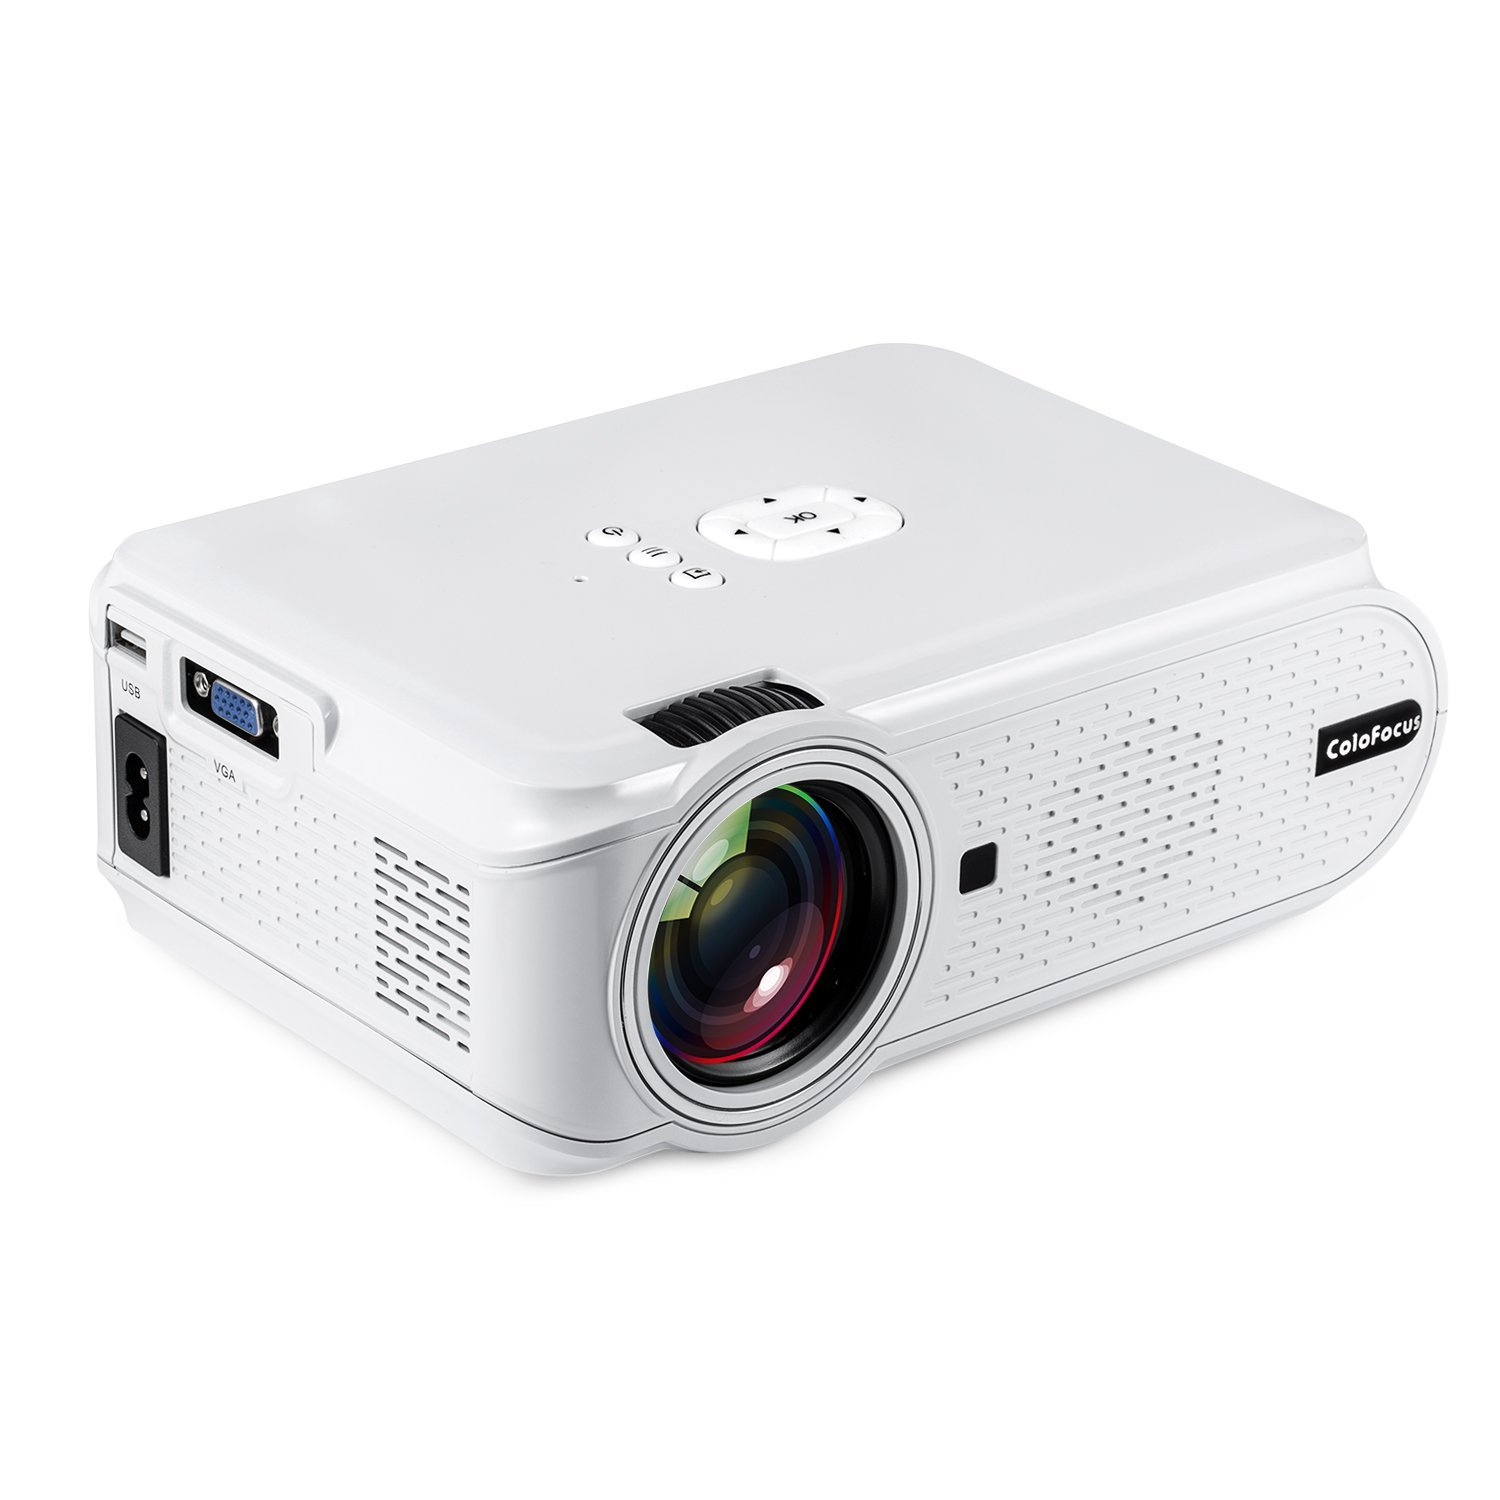 Hd projector home video mini projector with 1080p for Hd projector